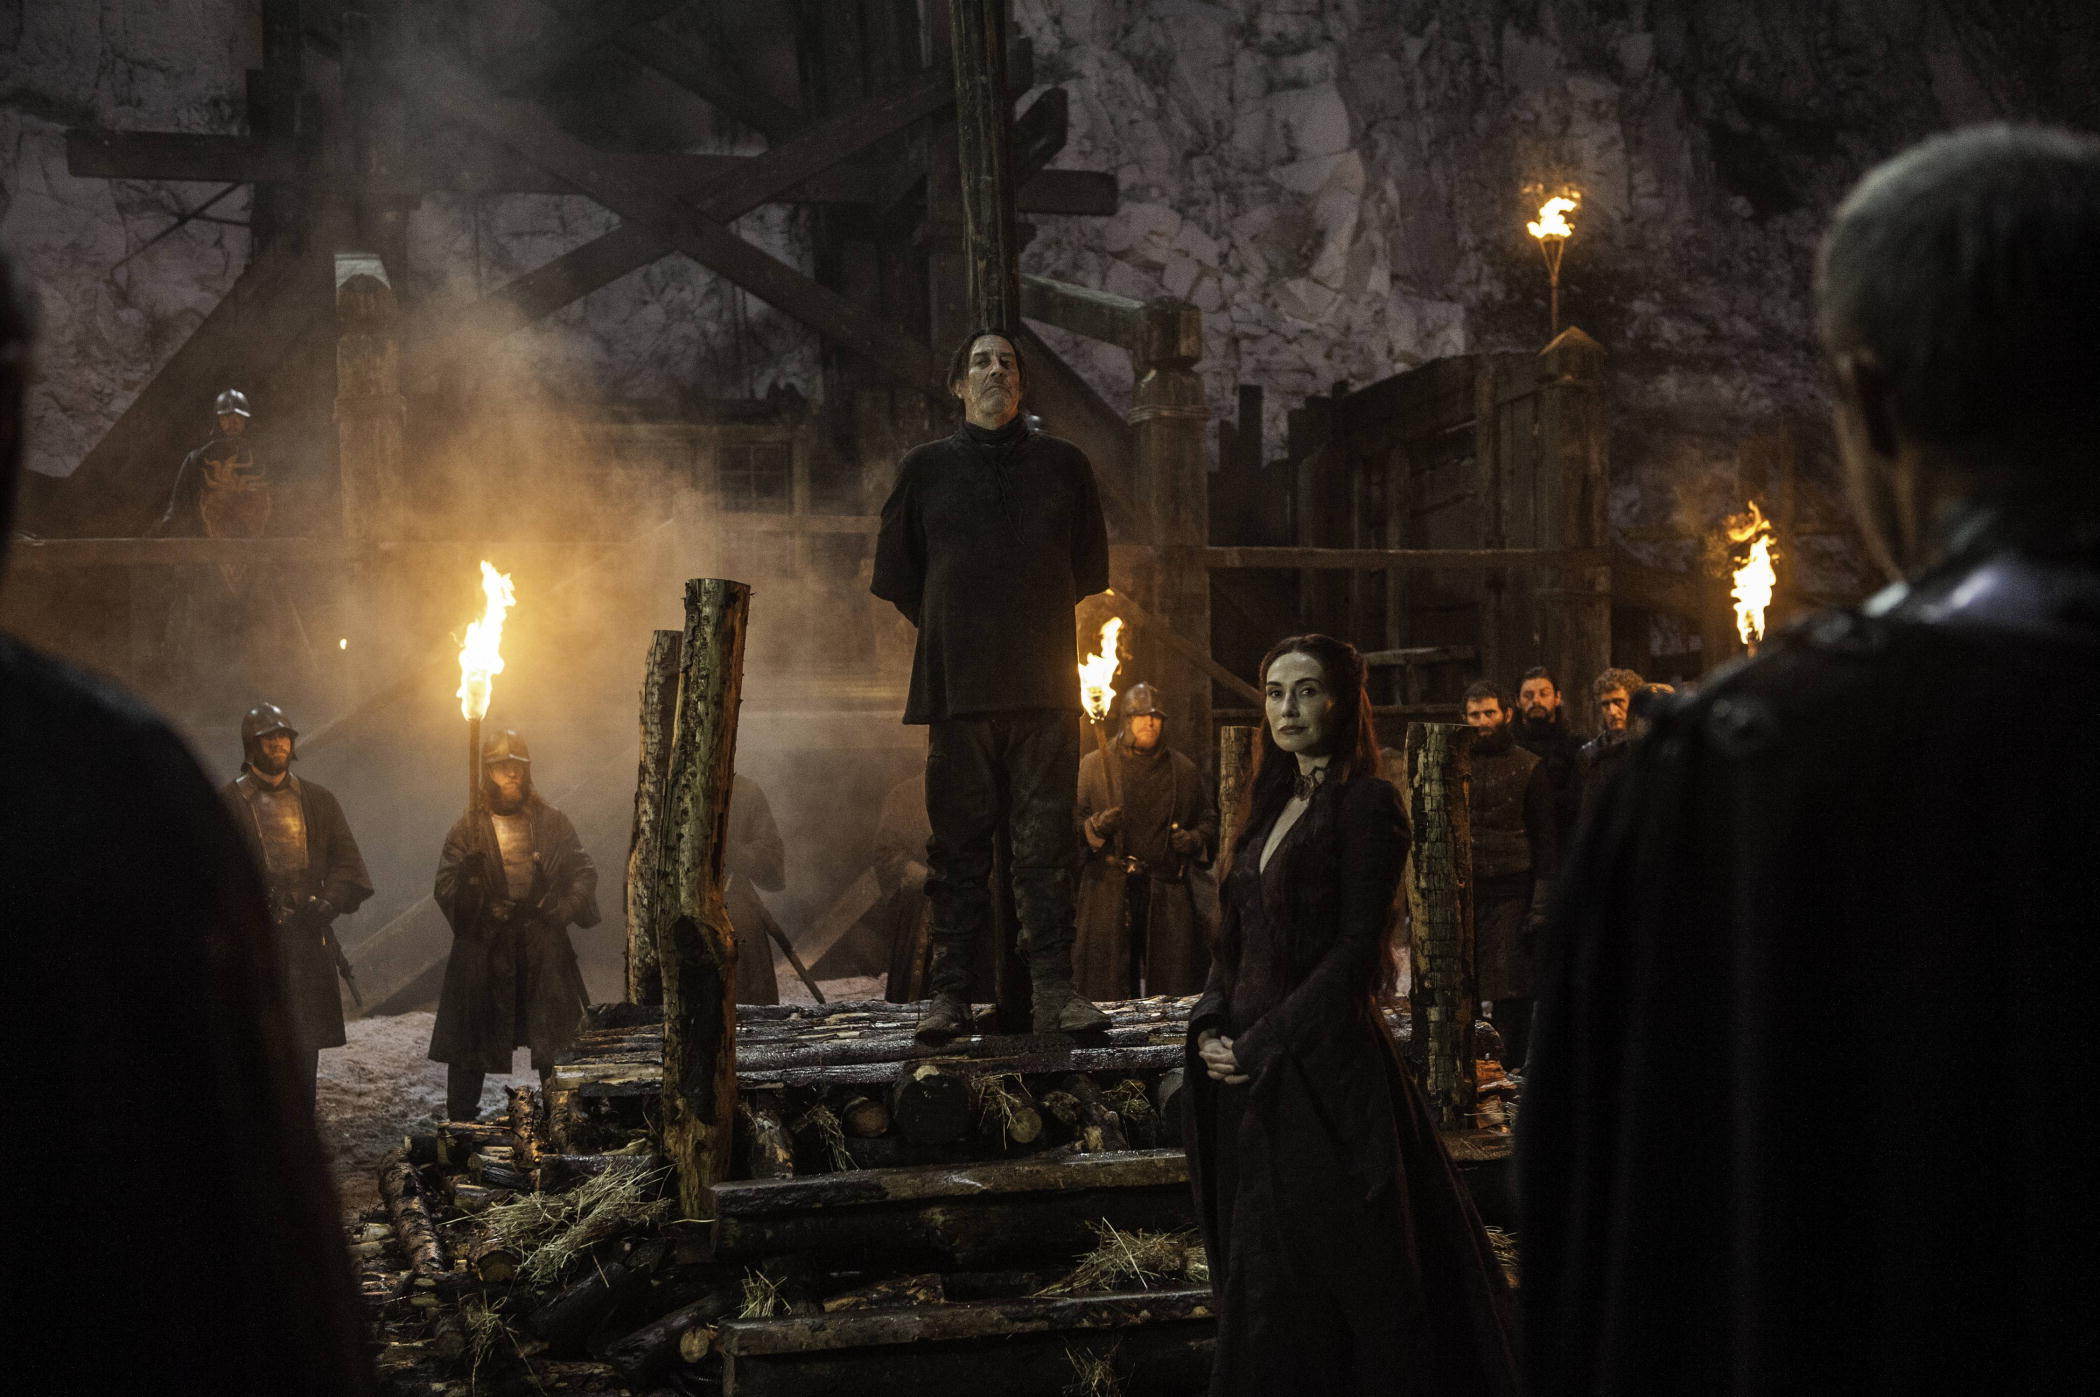 game of thrones ep 501 wars to come recap images 2015